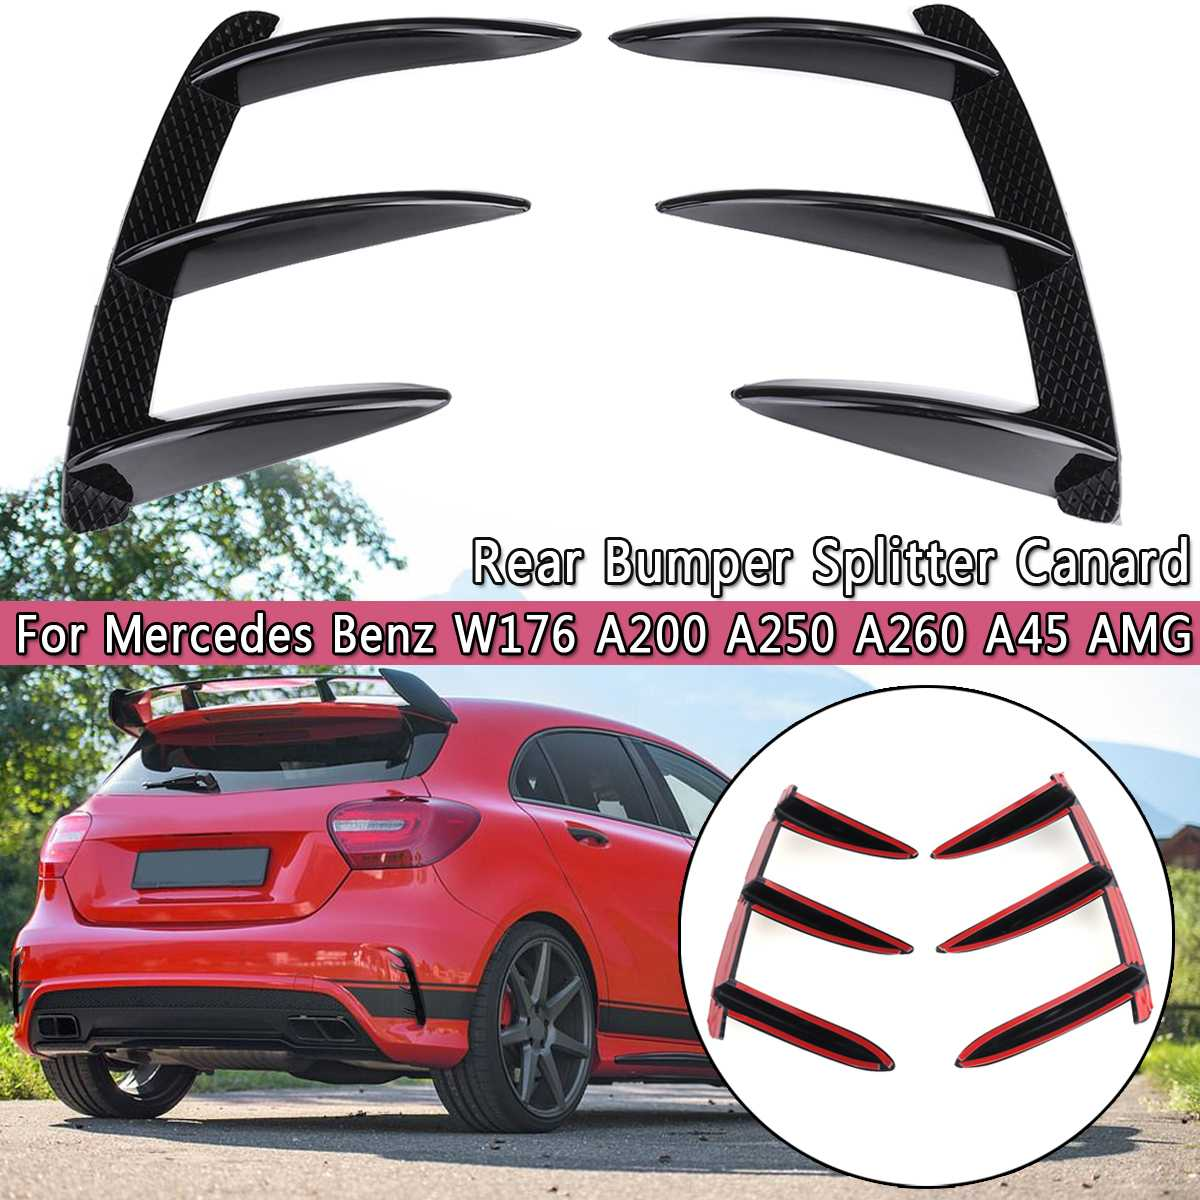 Pair Car Painted ABS Rear Bumper Splitter Spoilers Canard for <font><b>Mercedes</b></font> for <font><b>Benz</b></font> <font><b>W176</b></font> <font><b>A200</b></font> A250 A260 A45 for AMG Rear Splitter image